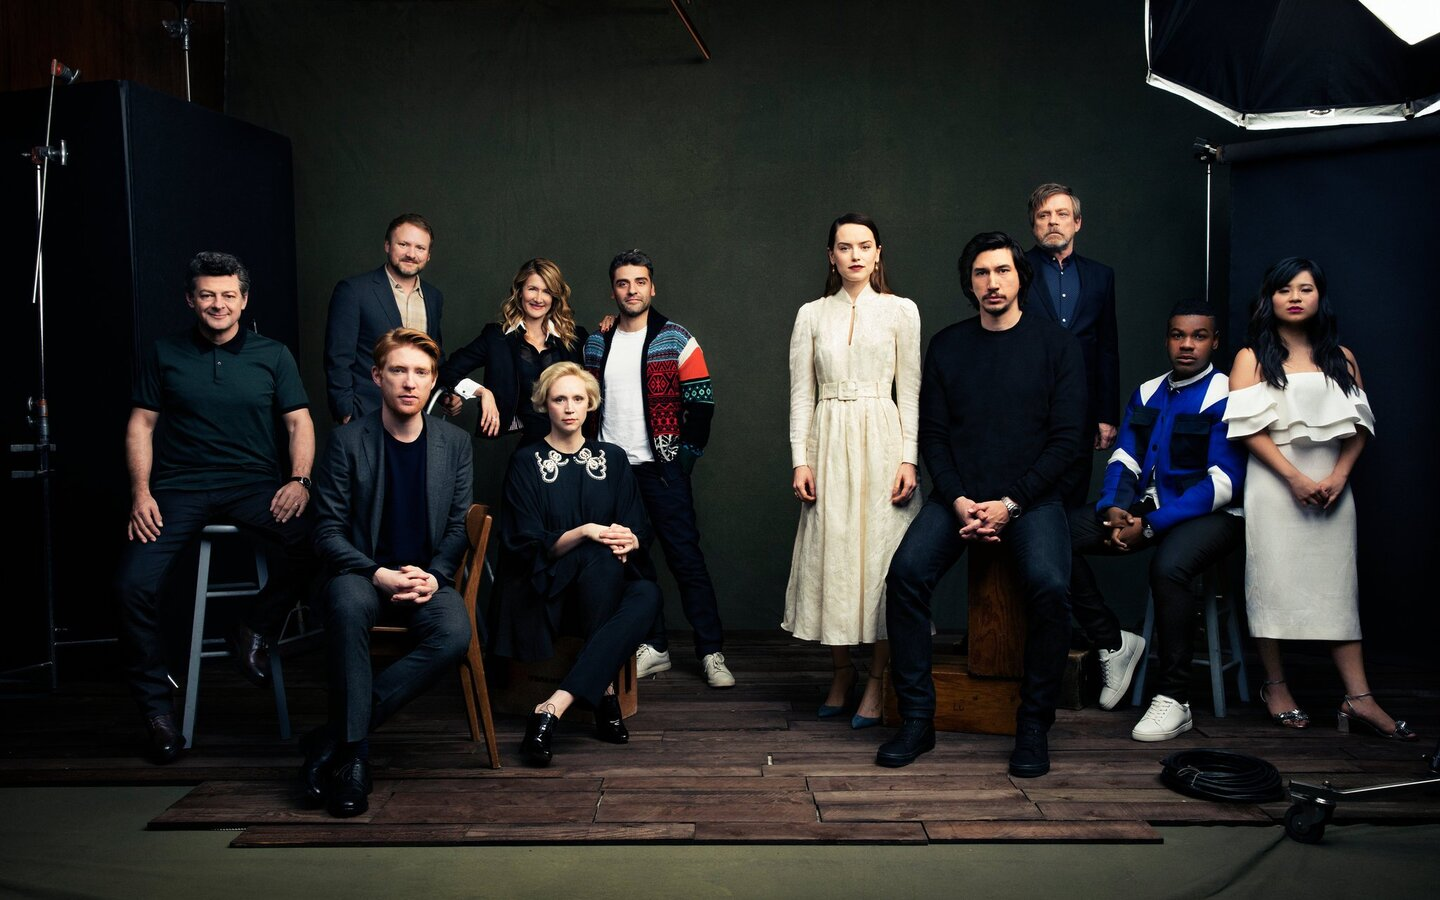 1440x900 Star Wars The Last Jedi Cast Photoshoot Vanity Fair 1440x900 Resolution Hd 4k Wallpapers Images Backgrounds Photos And Pictures